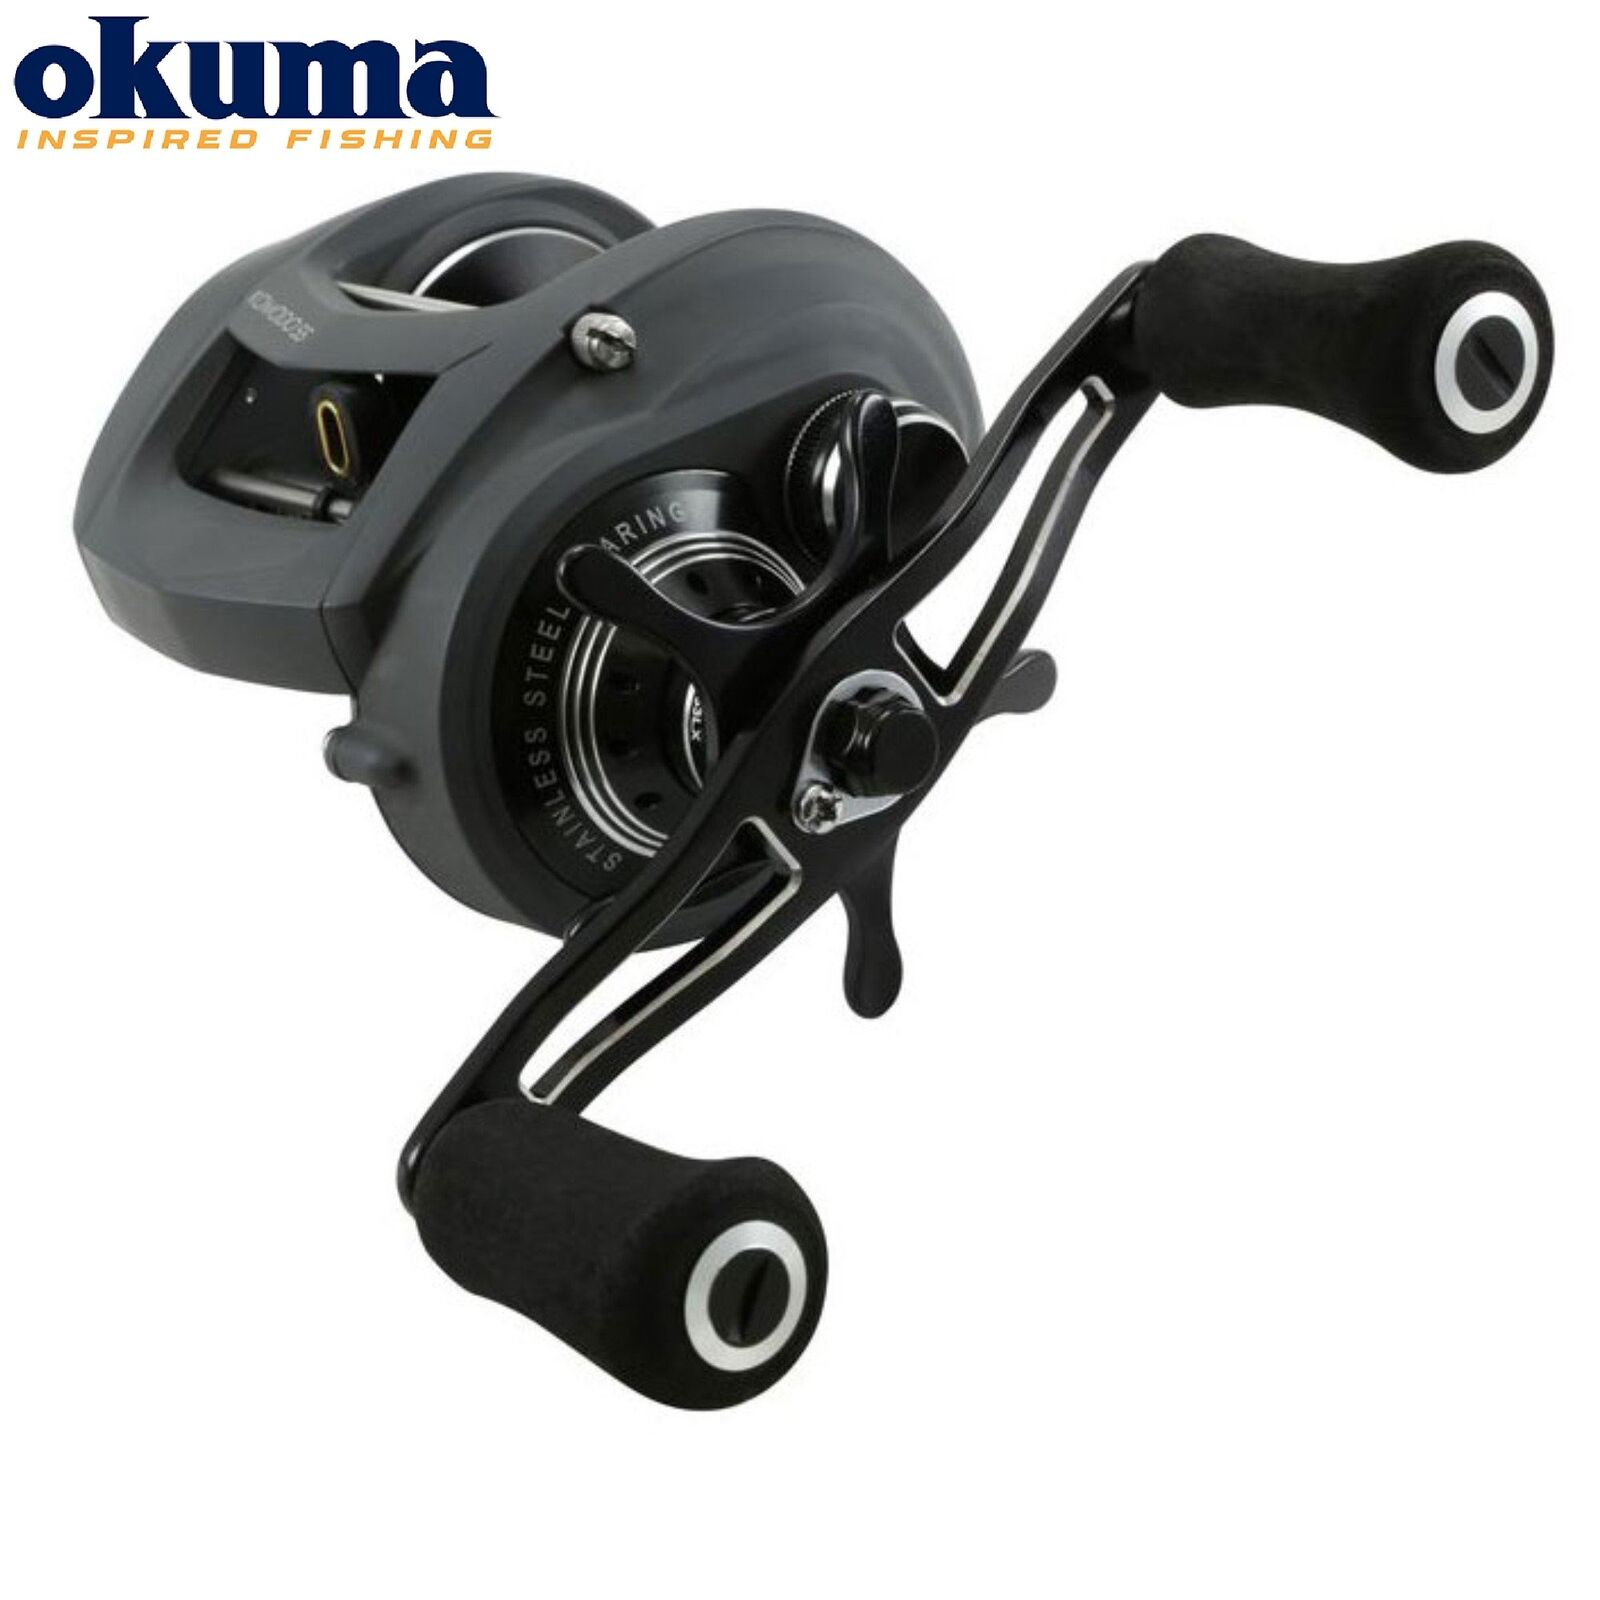 Okuma Komodo SS Low Profile Baitcast Fishing Reel Left Hand KDS-273LX KDS-463LX